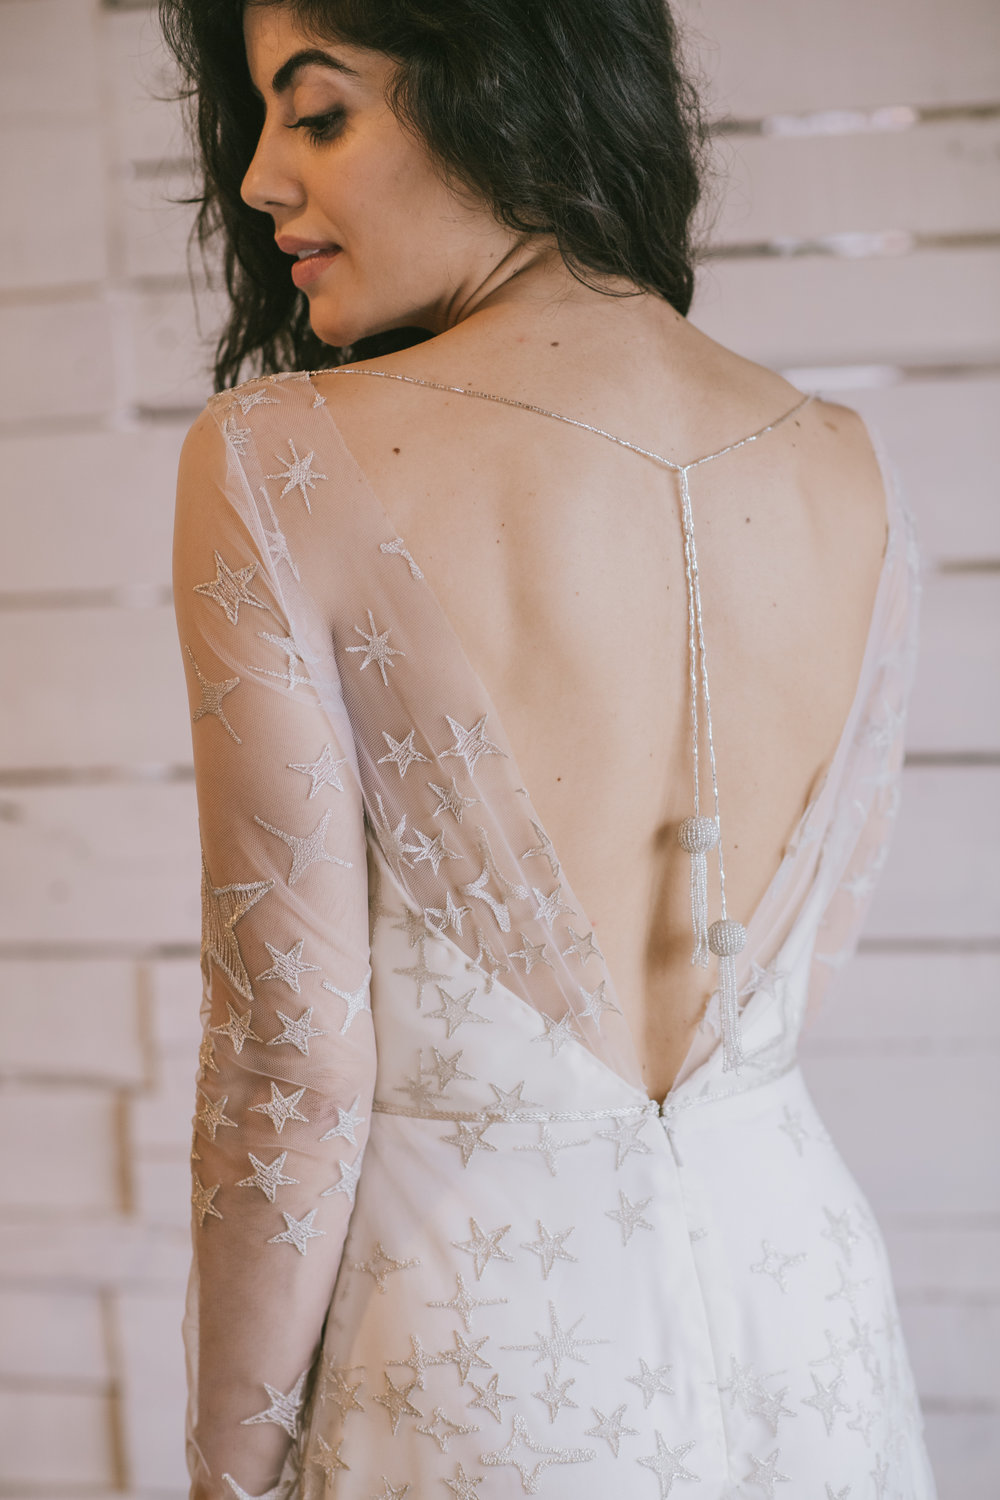 ivory-and-beau-bridal-boutique-loulette-bridal-trunk-show-bohemian-wedding-gowns-boho-wedding-dresses-savannah-boho-wedding-6.JPG